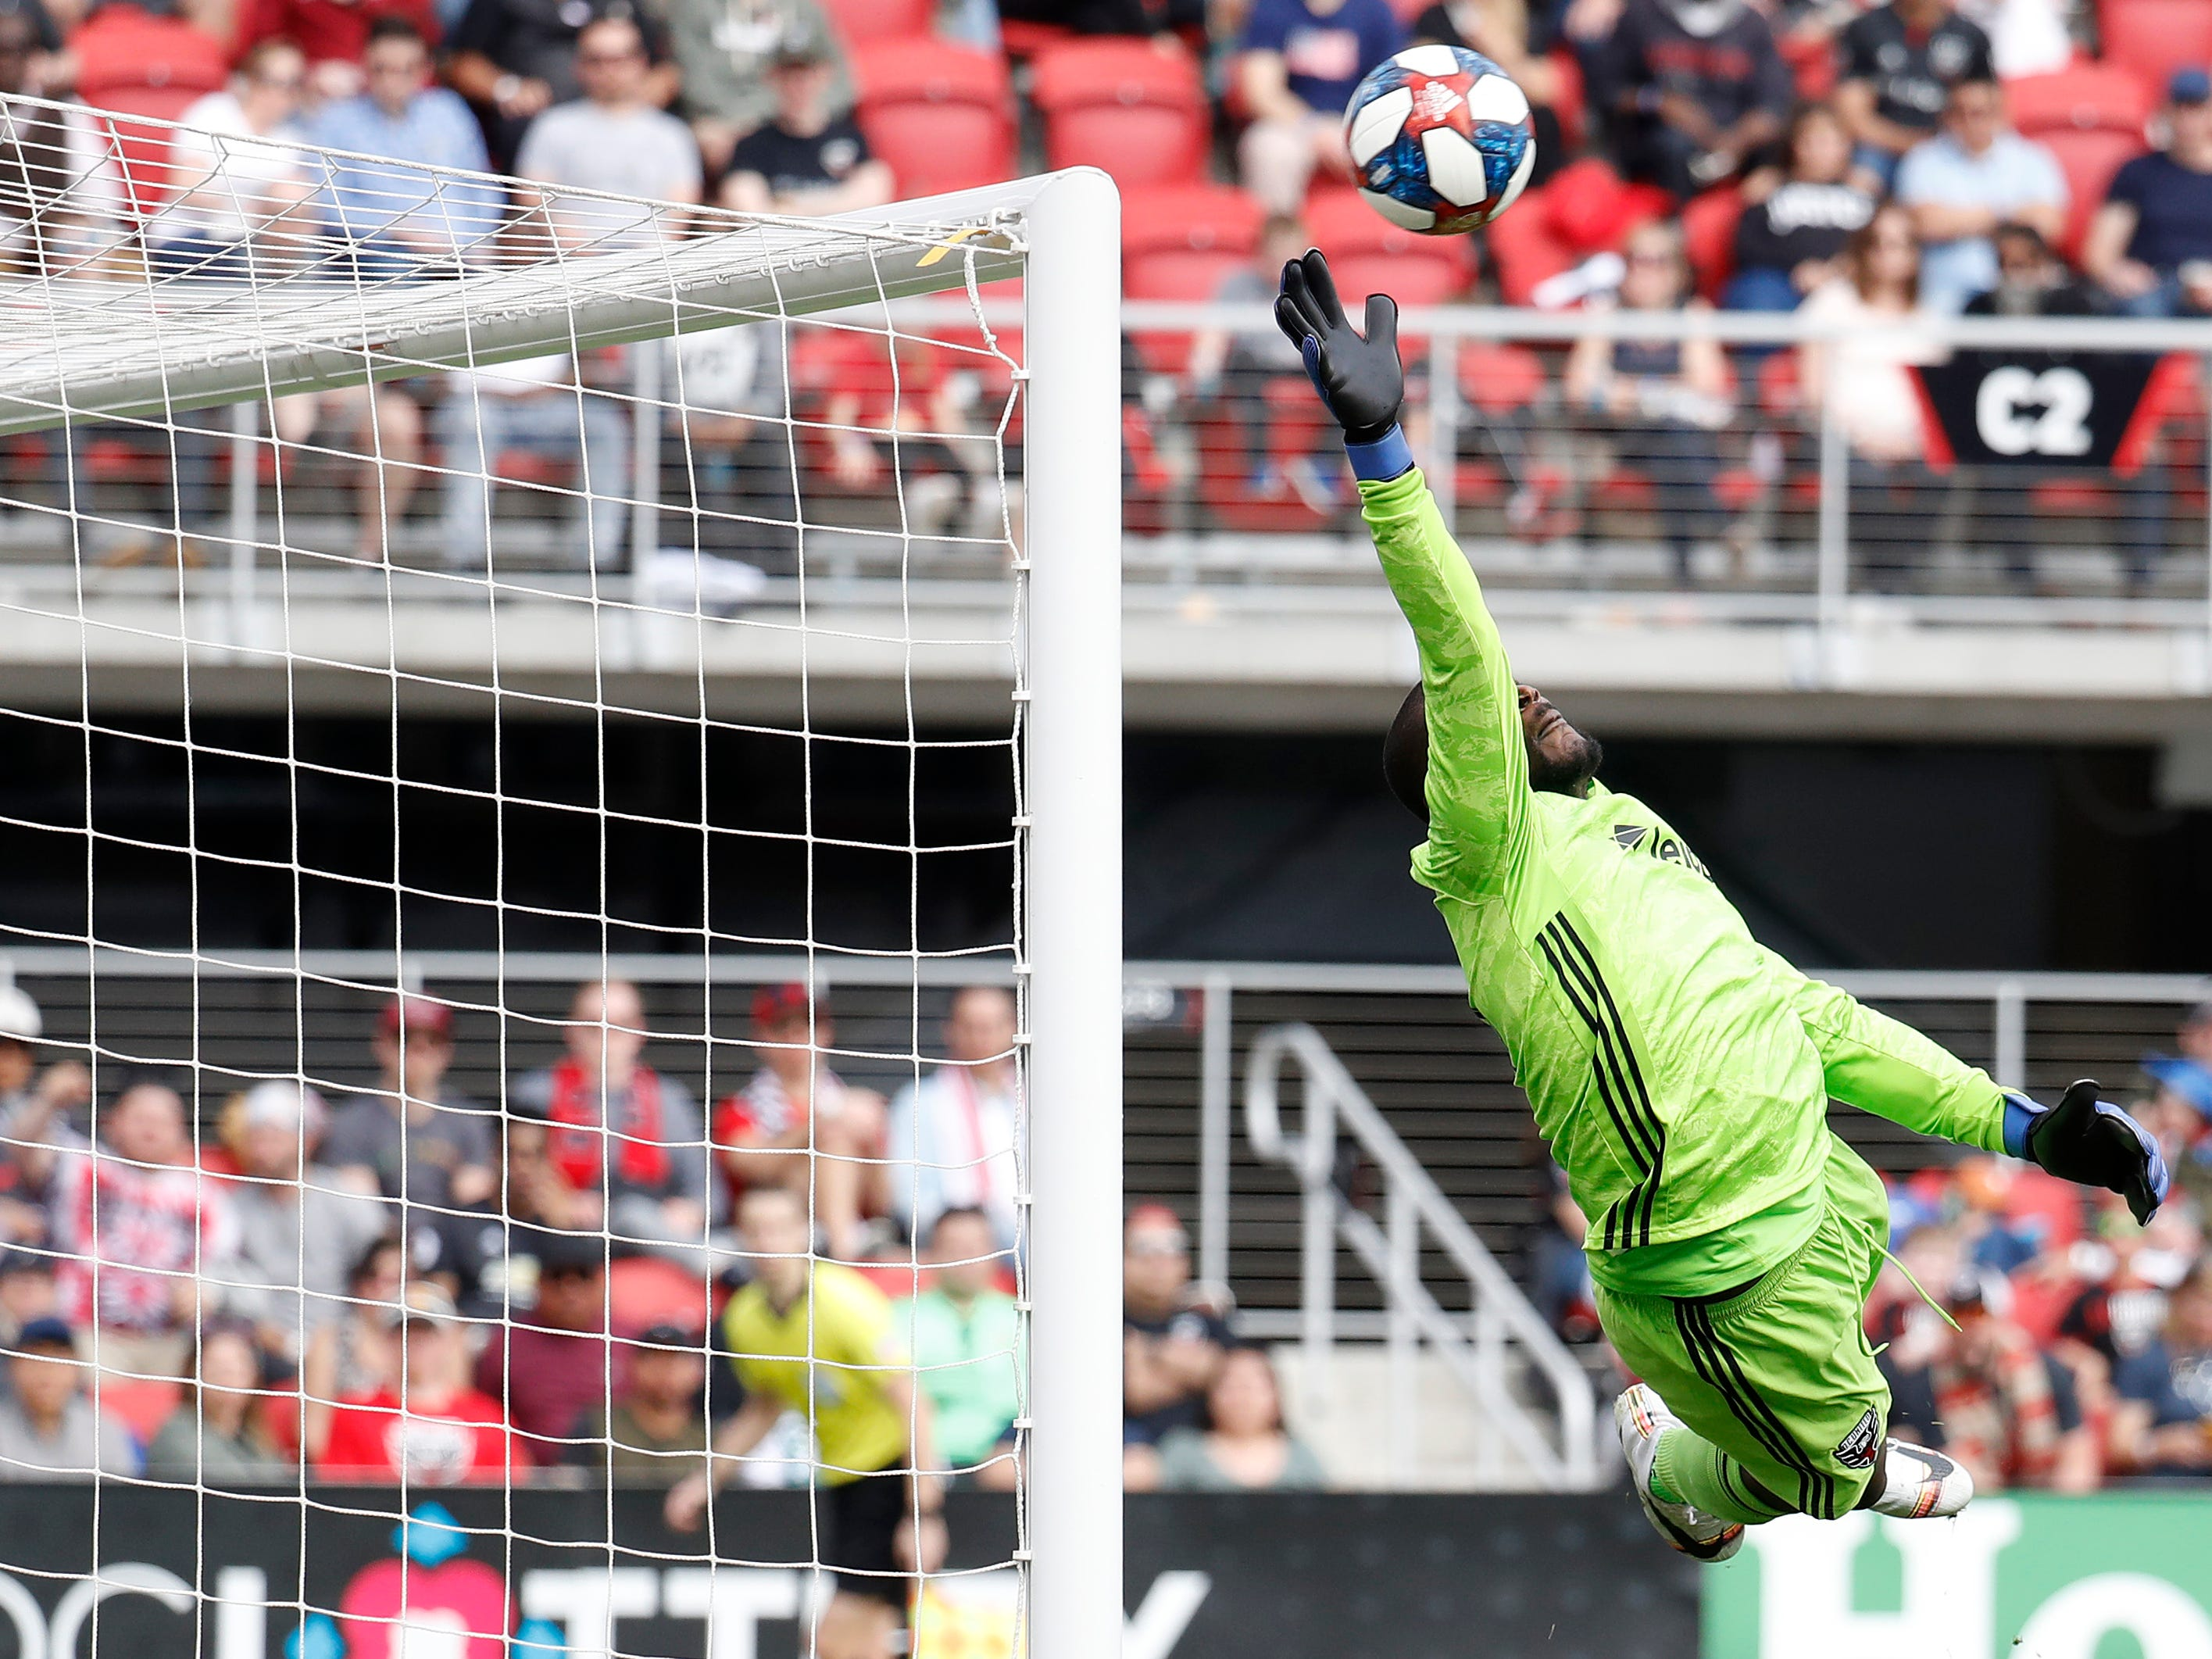 D.C. United goalkeeper Bill Hamid makes a save against Los Angeles FC in the second half at Audi Field. LAFC won the game, 4-0.